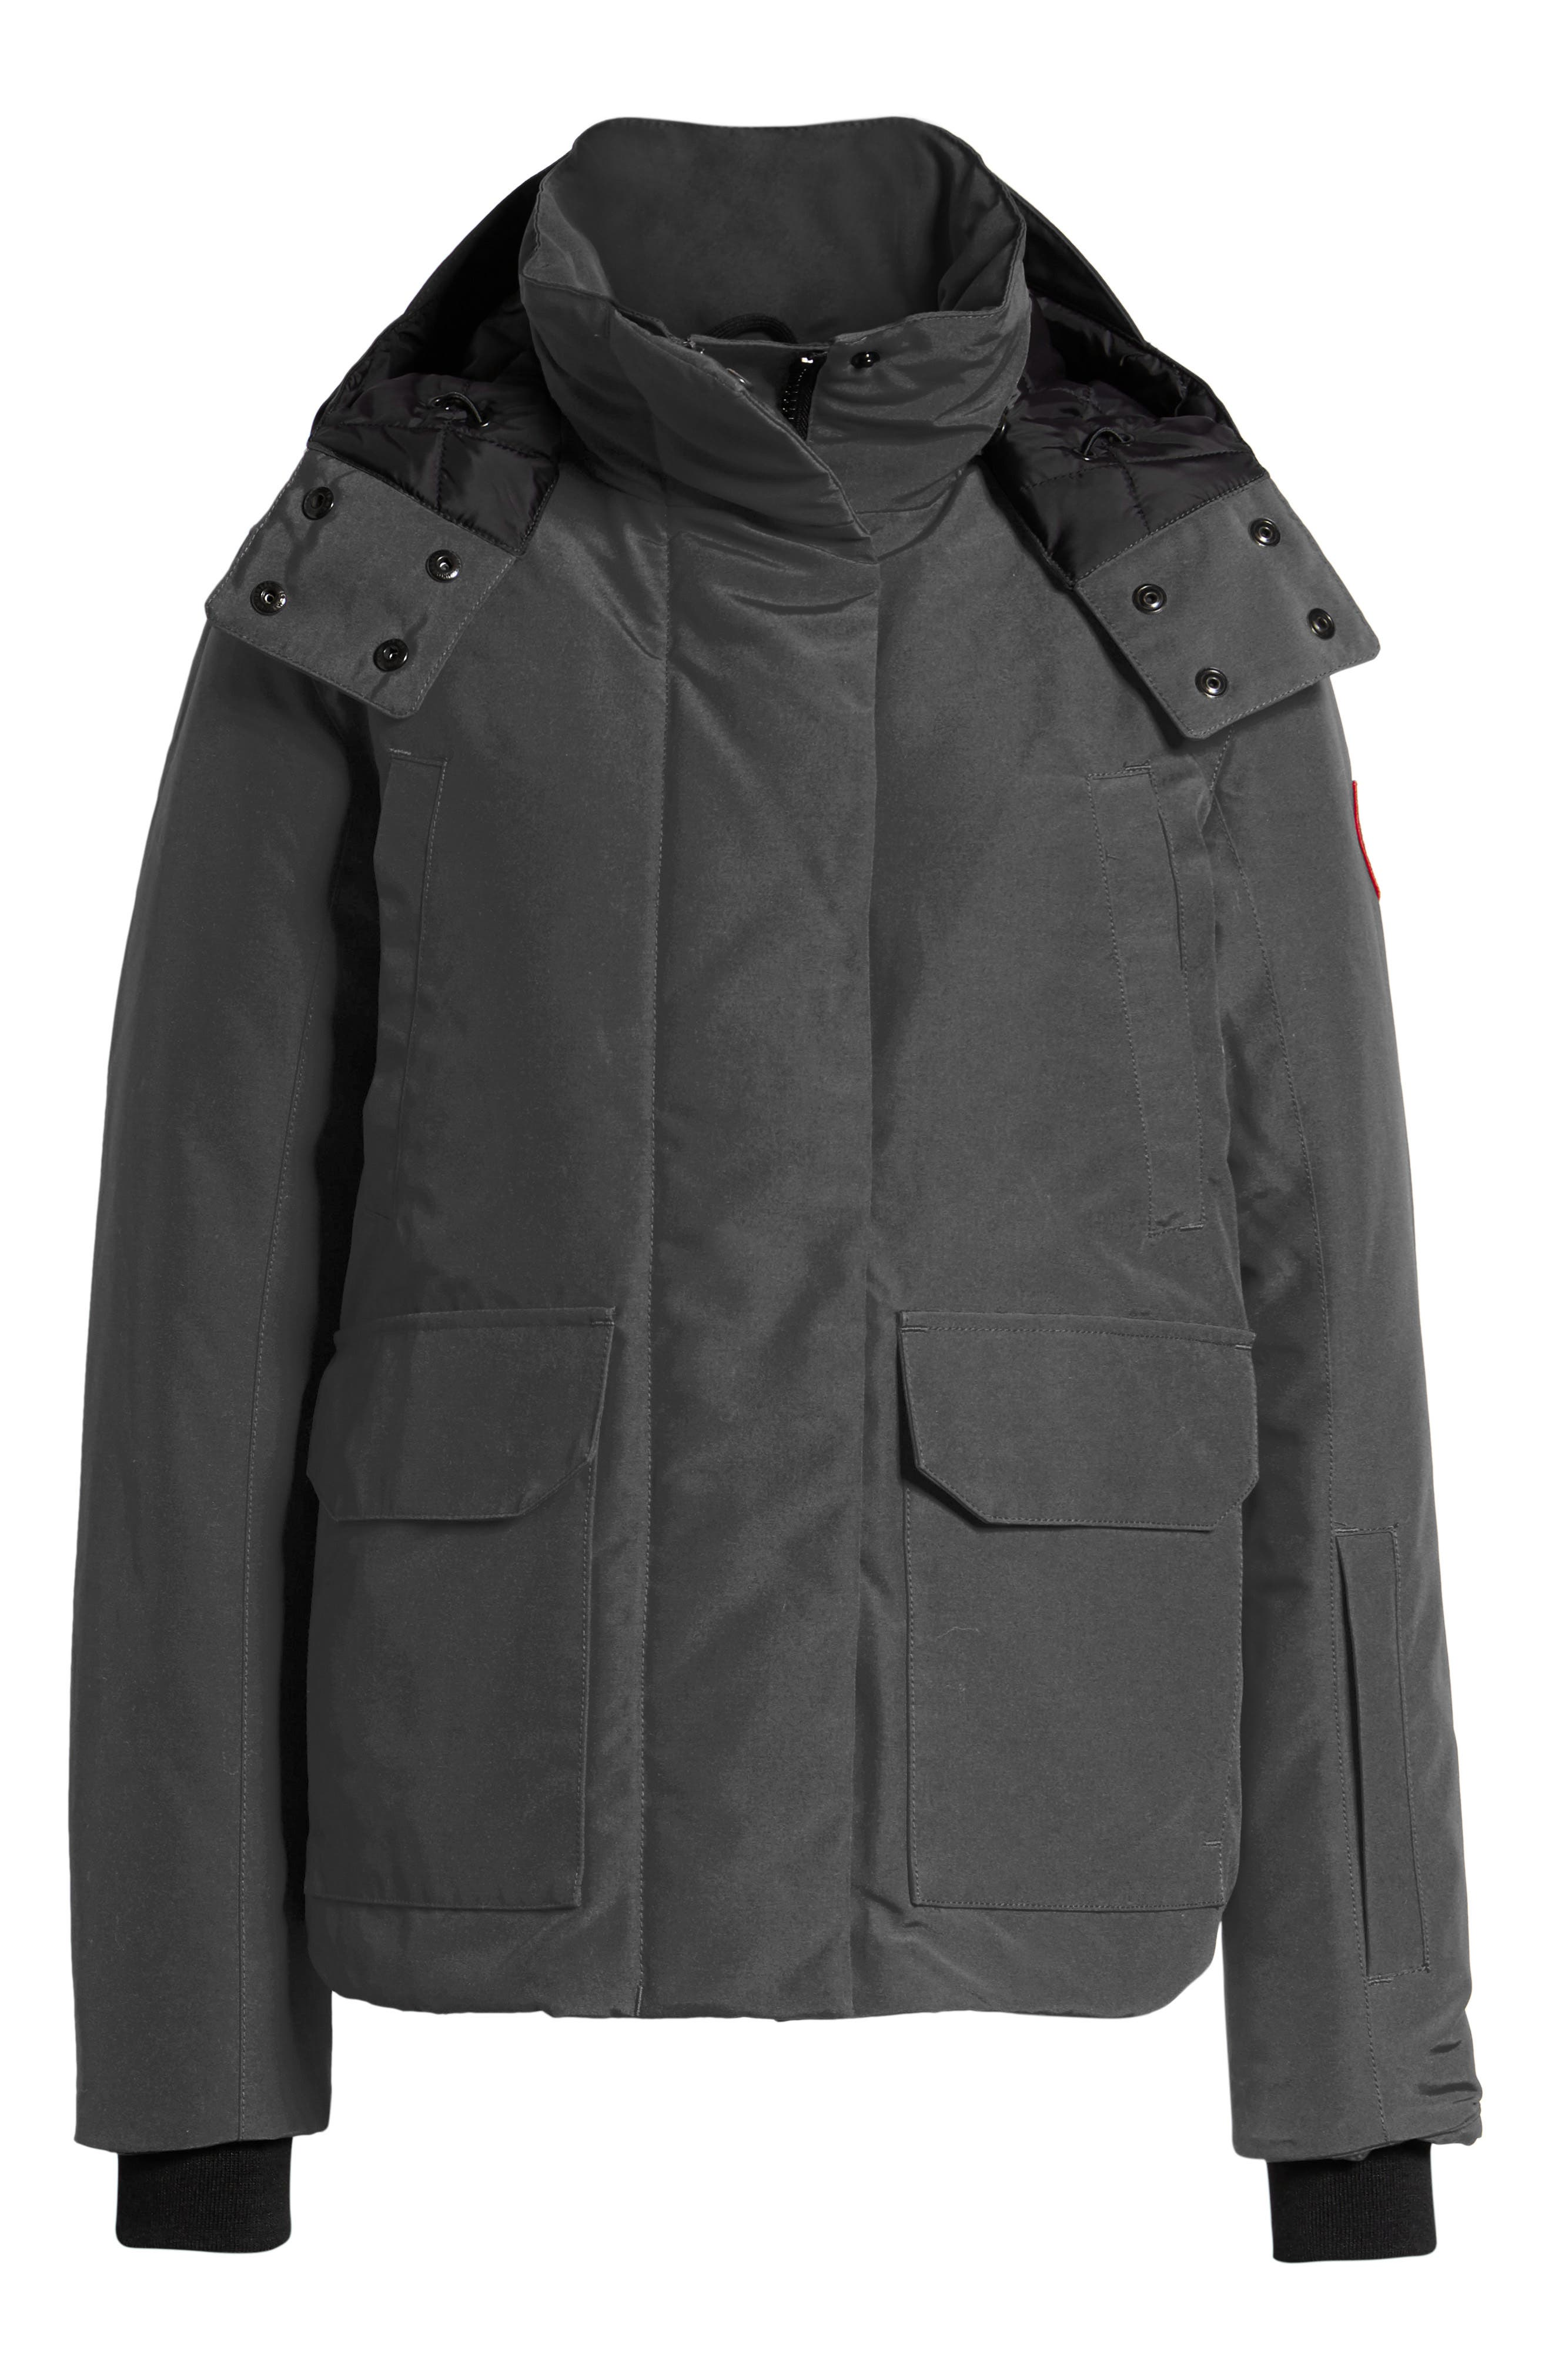 CANADA GOOSE, Blakely Water Resistant 625 Fill Power Down Parka, Alternate thumbnail 5, color, GRAPHITE